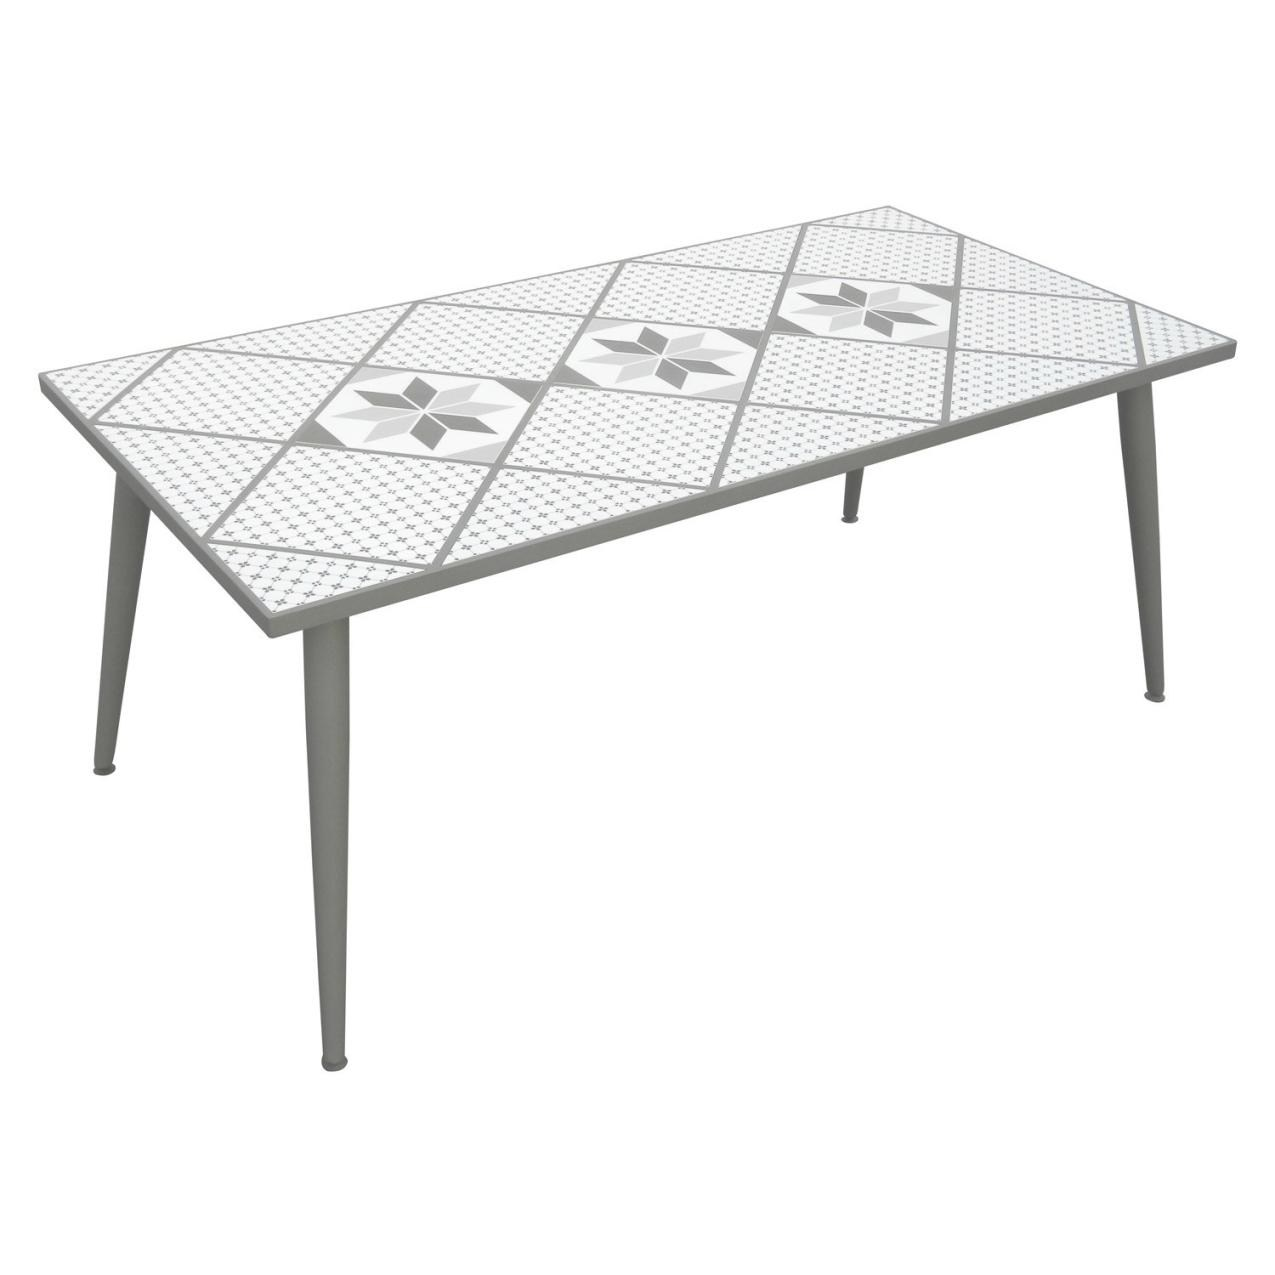 De Jardin Table Naterial Jardin Table De Antibes eI2WHYED9